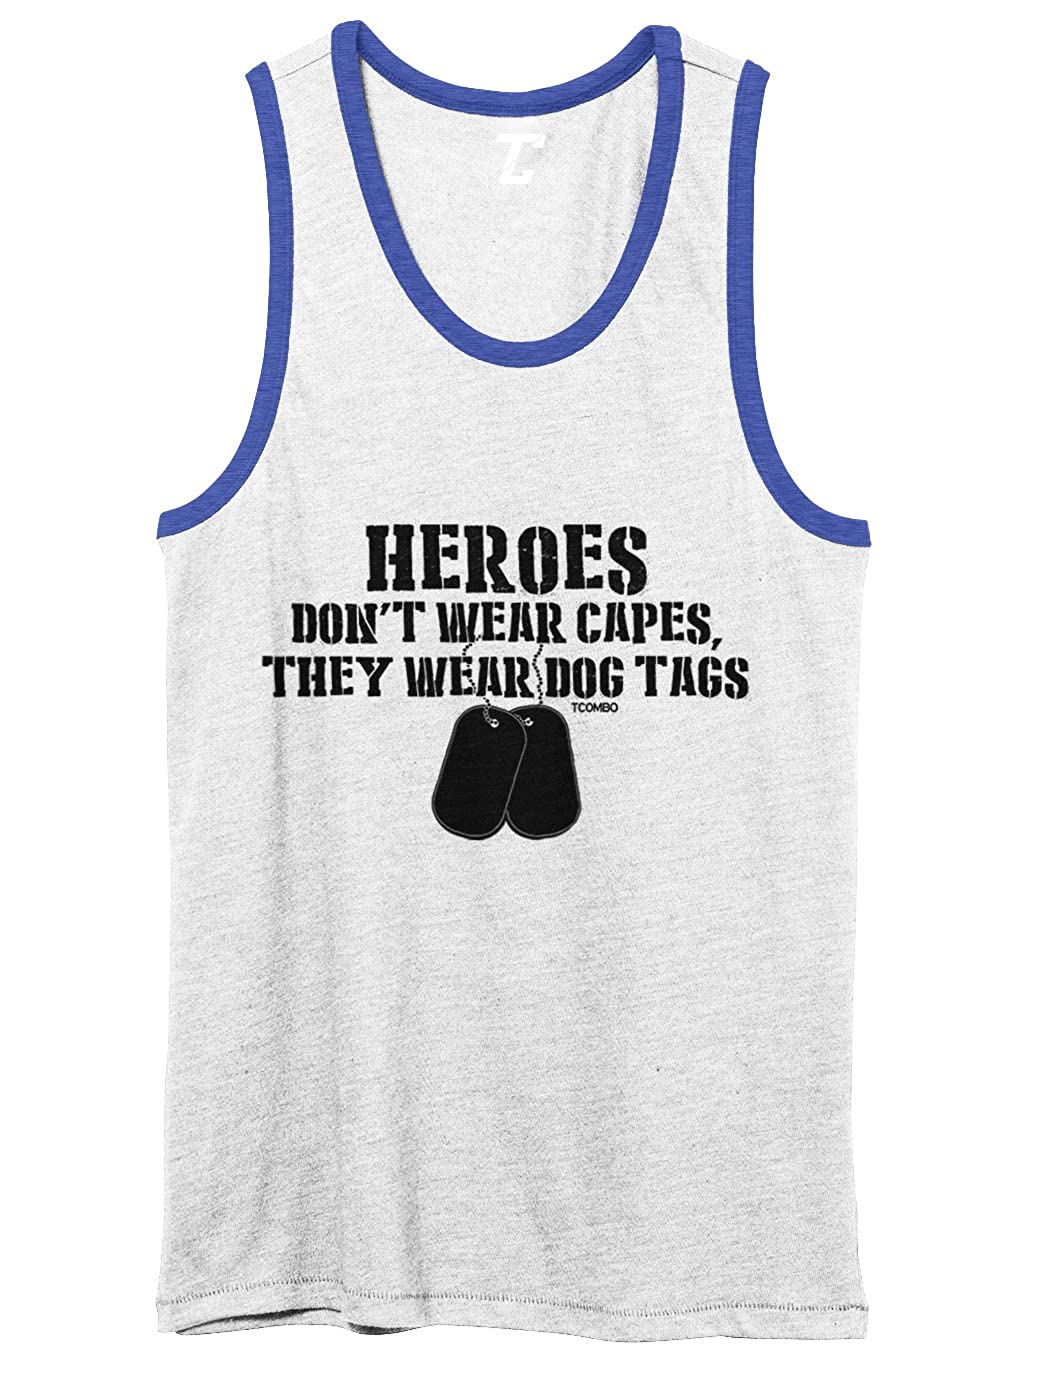 They Wear Dog Tags Unisex 2-Tone Tank Top Heroes Dont Wear Capes